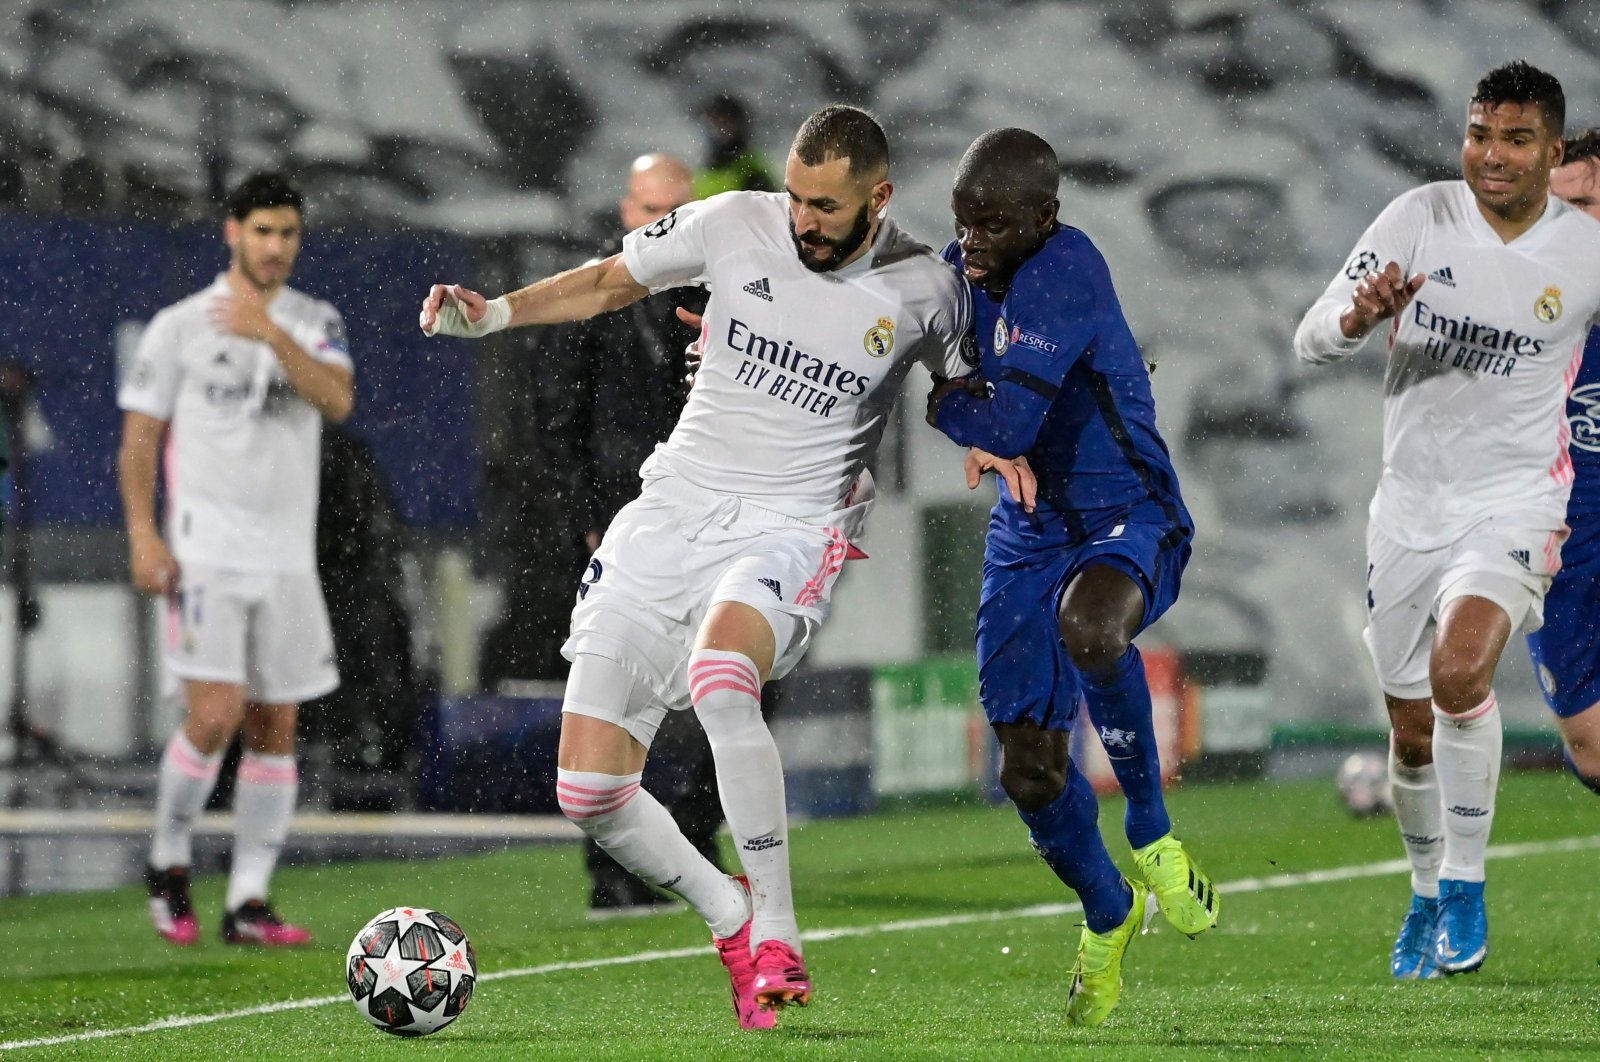 Chelsea's French midfielder N'Golo Kante (2nd R) challenges Real Madrid's French forward Karim Benzema during the UEFA Champions League semifinal first leg match at the Alfredo di Stefano Stadium, Madrid, Spain, April 27, 2021. (AFP Photo)